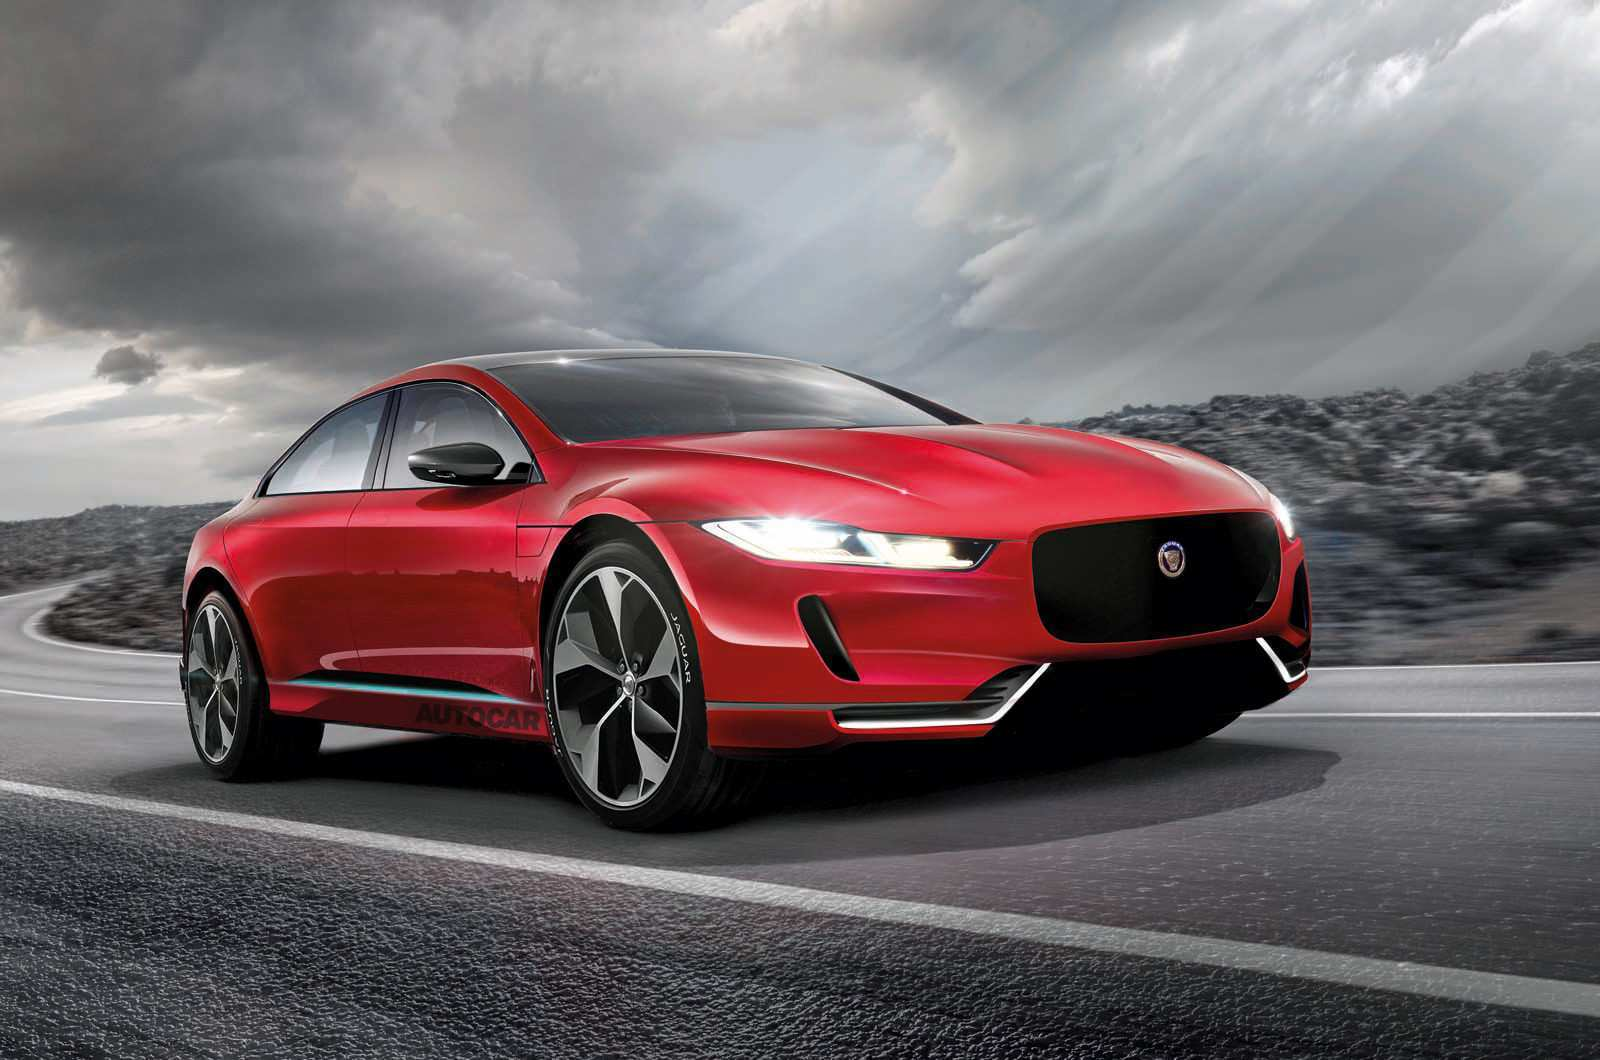 66 Concept of Jaguar Xe 2020 New Concept Specs and Review for Jaguar Xe 2020 New Concept